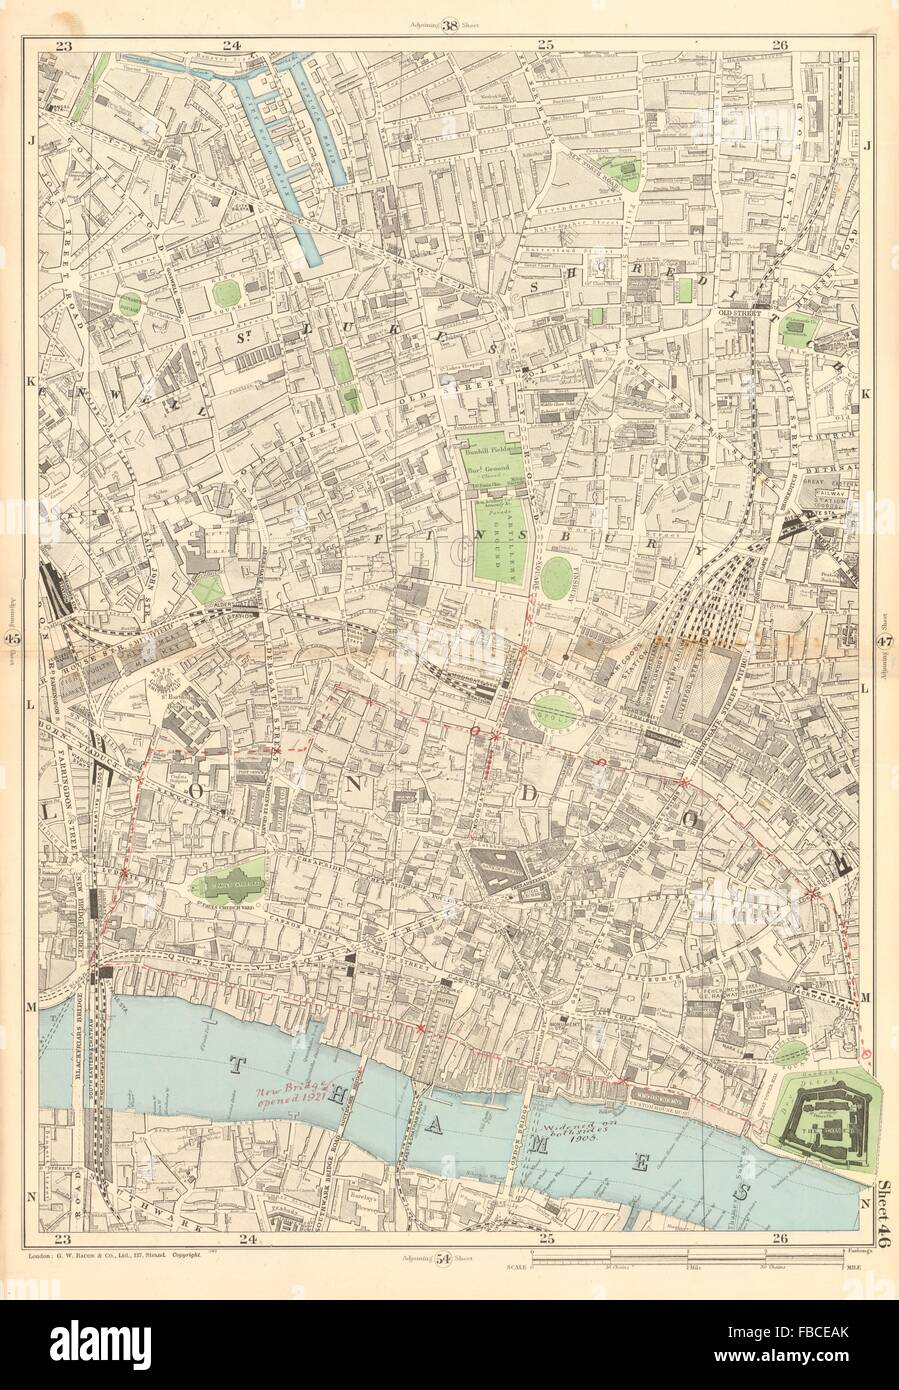 Shoreditch Map: Shoreditch London Map High Resolution Stock Photography